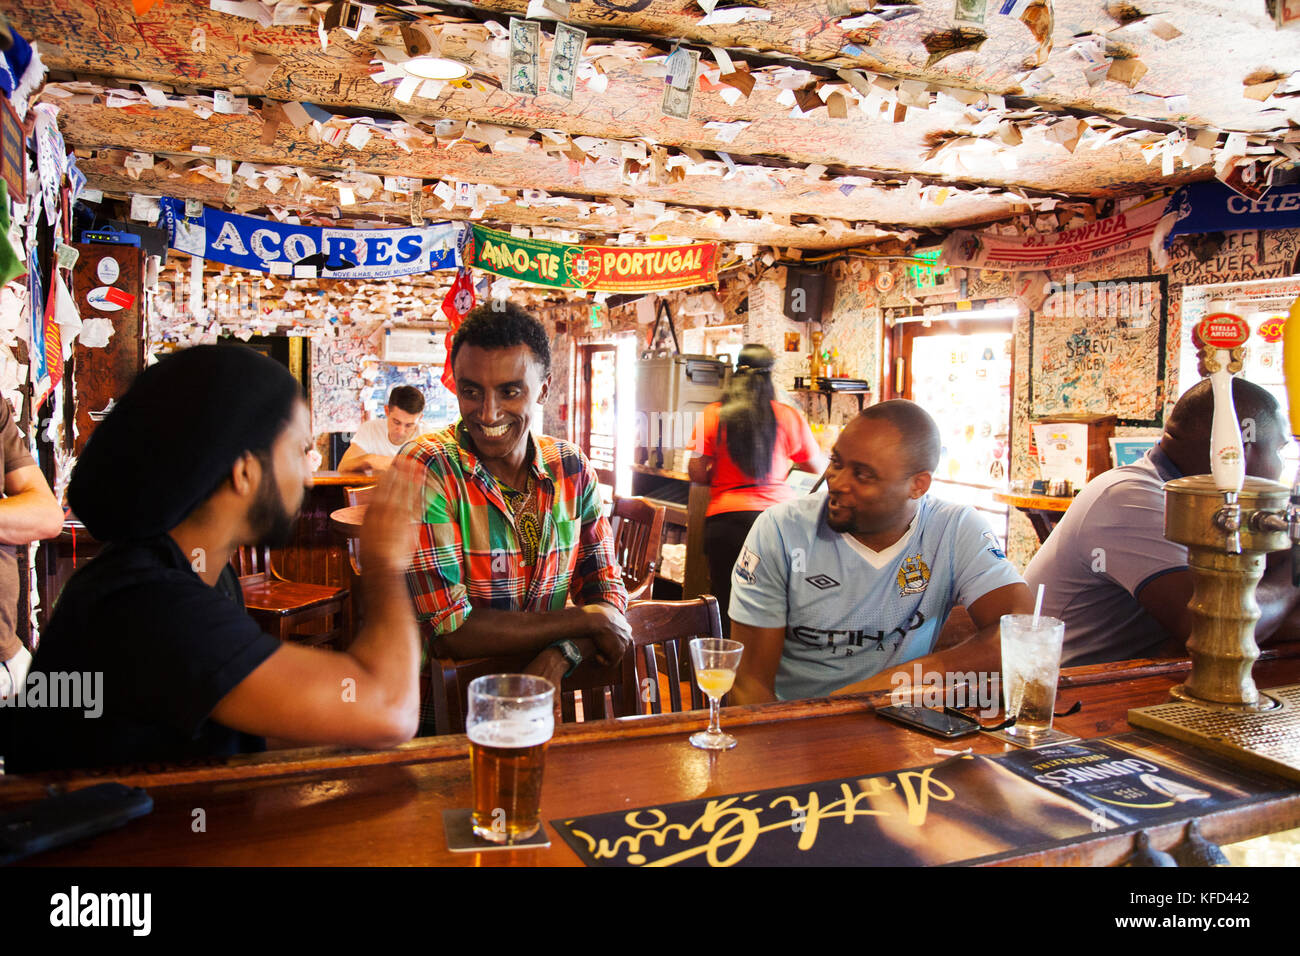 BERUMDA. Chef Marcus Samuelsson having a drink with the locals while watching a soccer game at the Swizzle Inn at Stock Photo